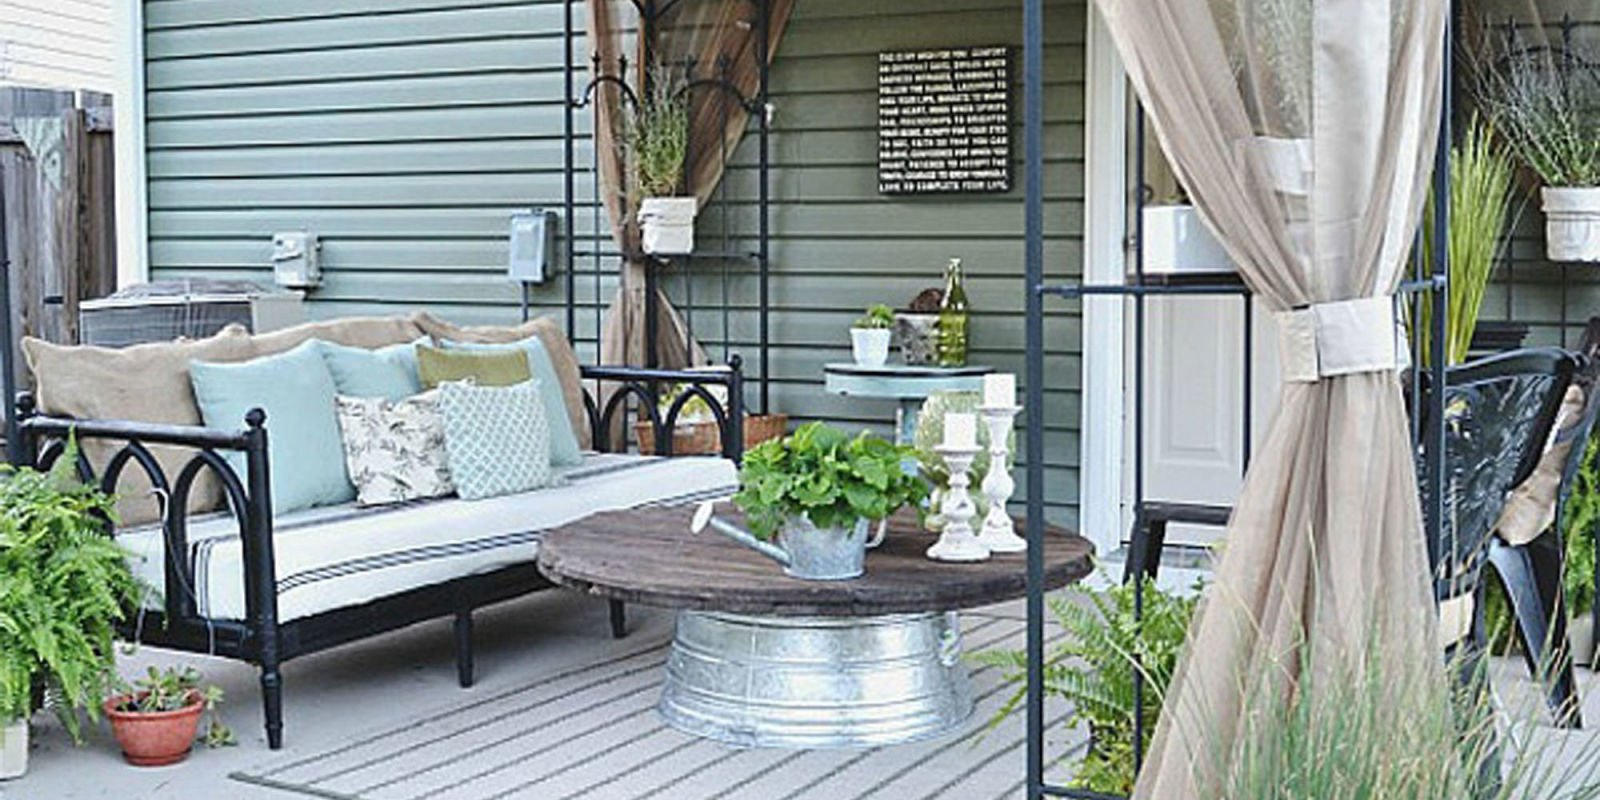 Patio Decor On A Budget Awesome Liz Marie Blog Patio before and after Patio Decorating Ideas